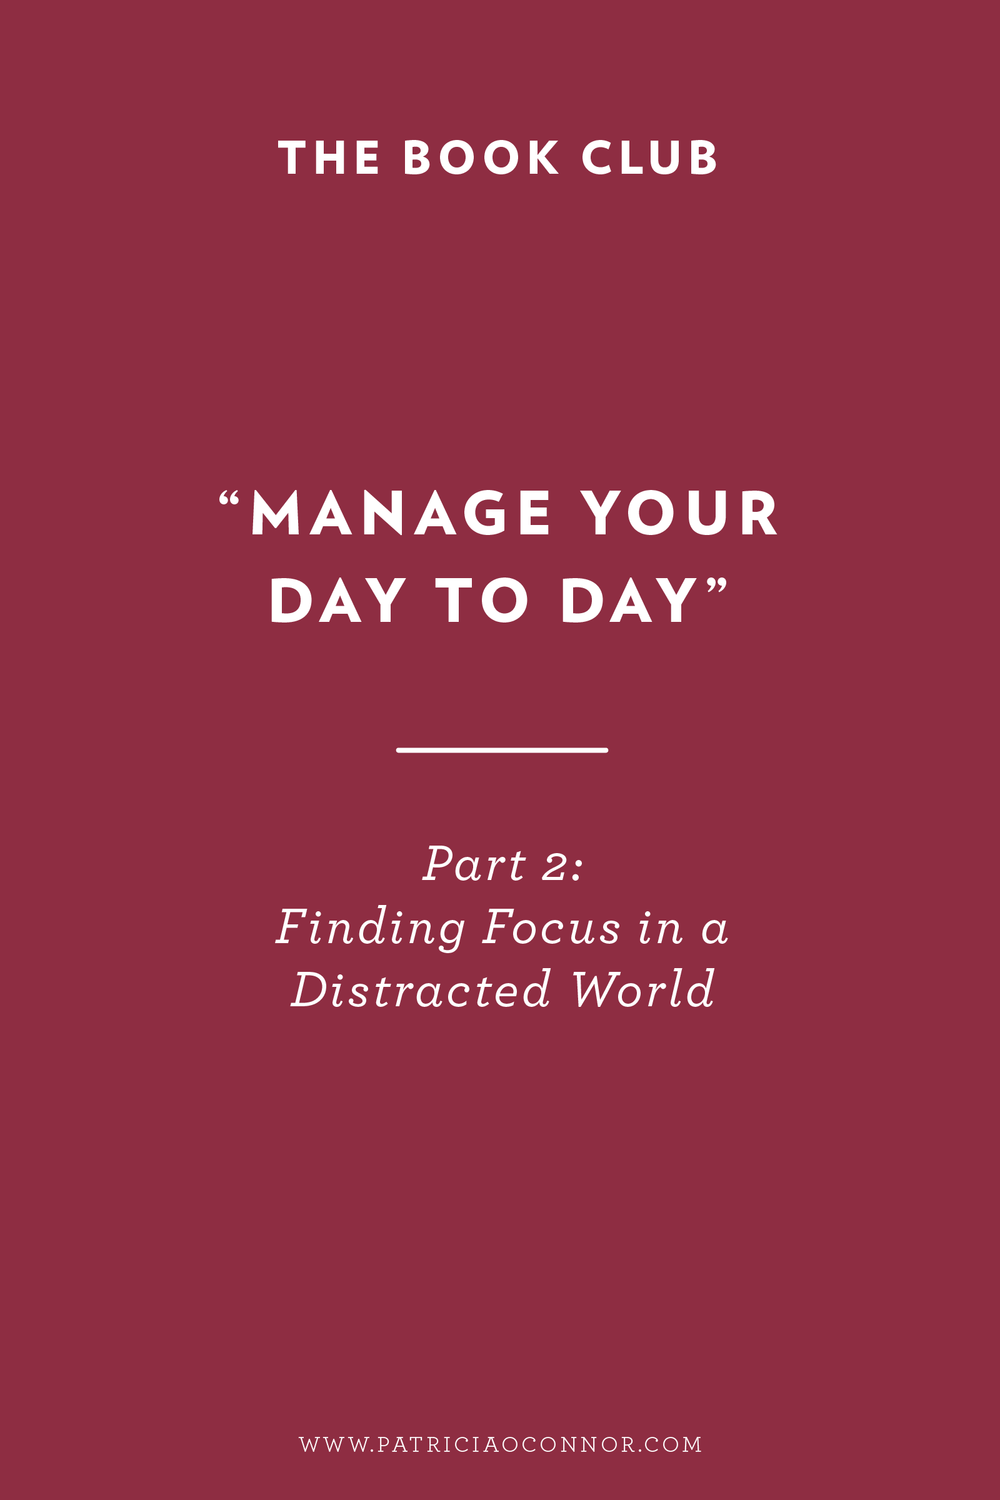 Manage Your Day to Day Part 2